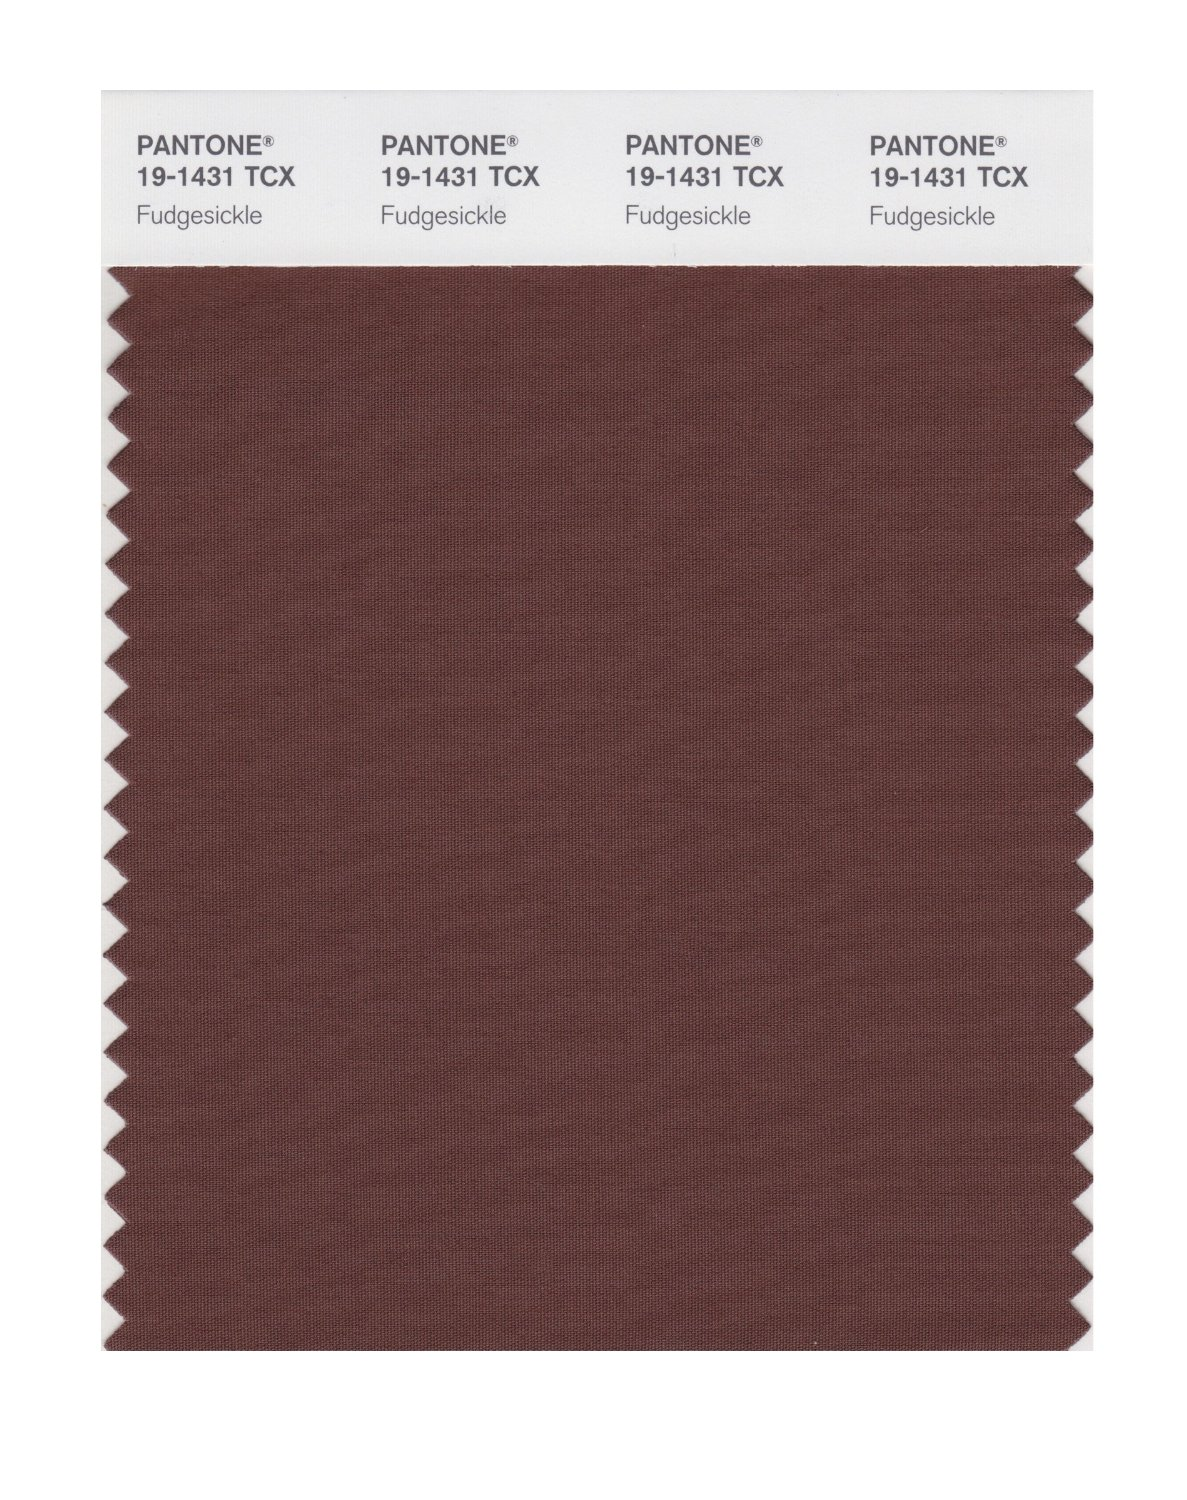 Pantone Smart Swatch 19-1431 Fudgesickle